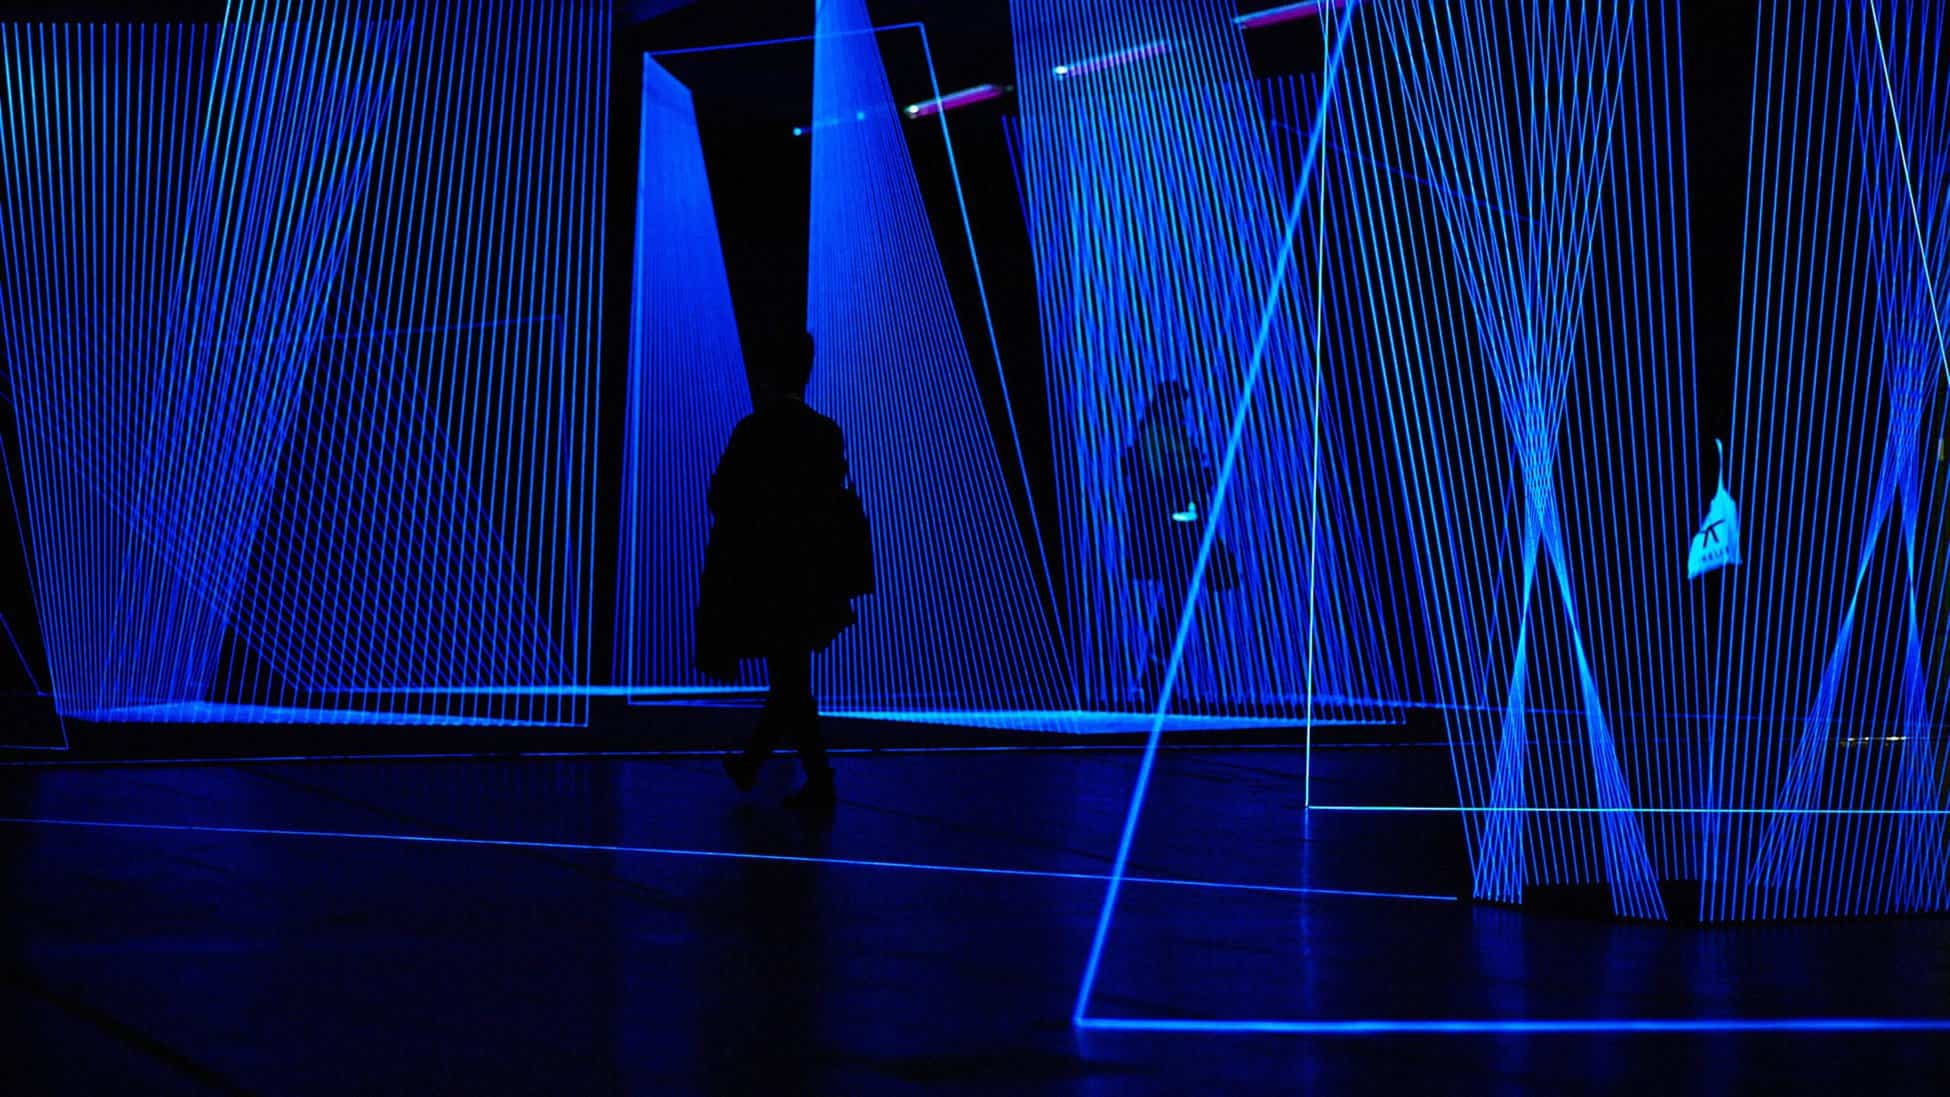 """In.Visible, Threads, Black Light Blue, 160 sqm space, 2014, Solo exhibition """"IN.VISIBLE"""" in MaximiliansForum, Munich. © Jeongmoon Choi"""